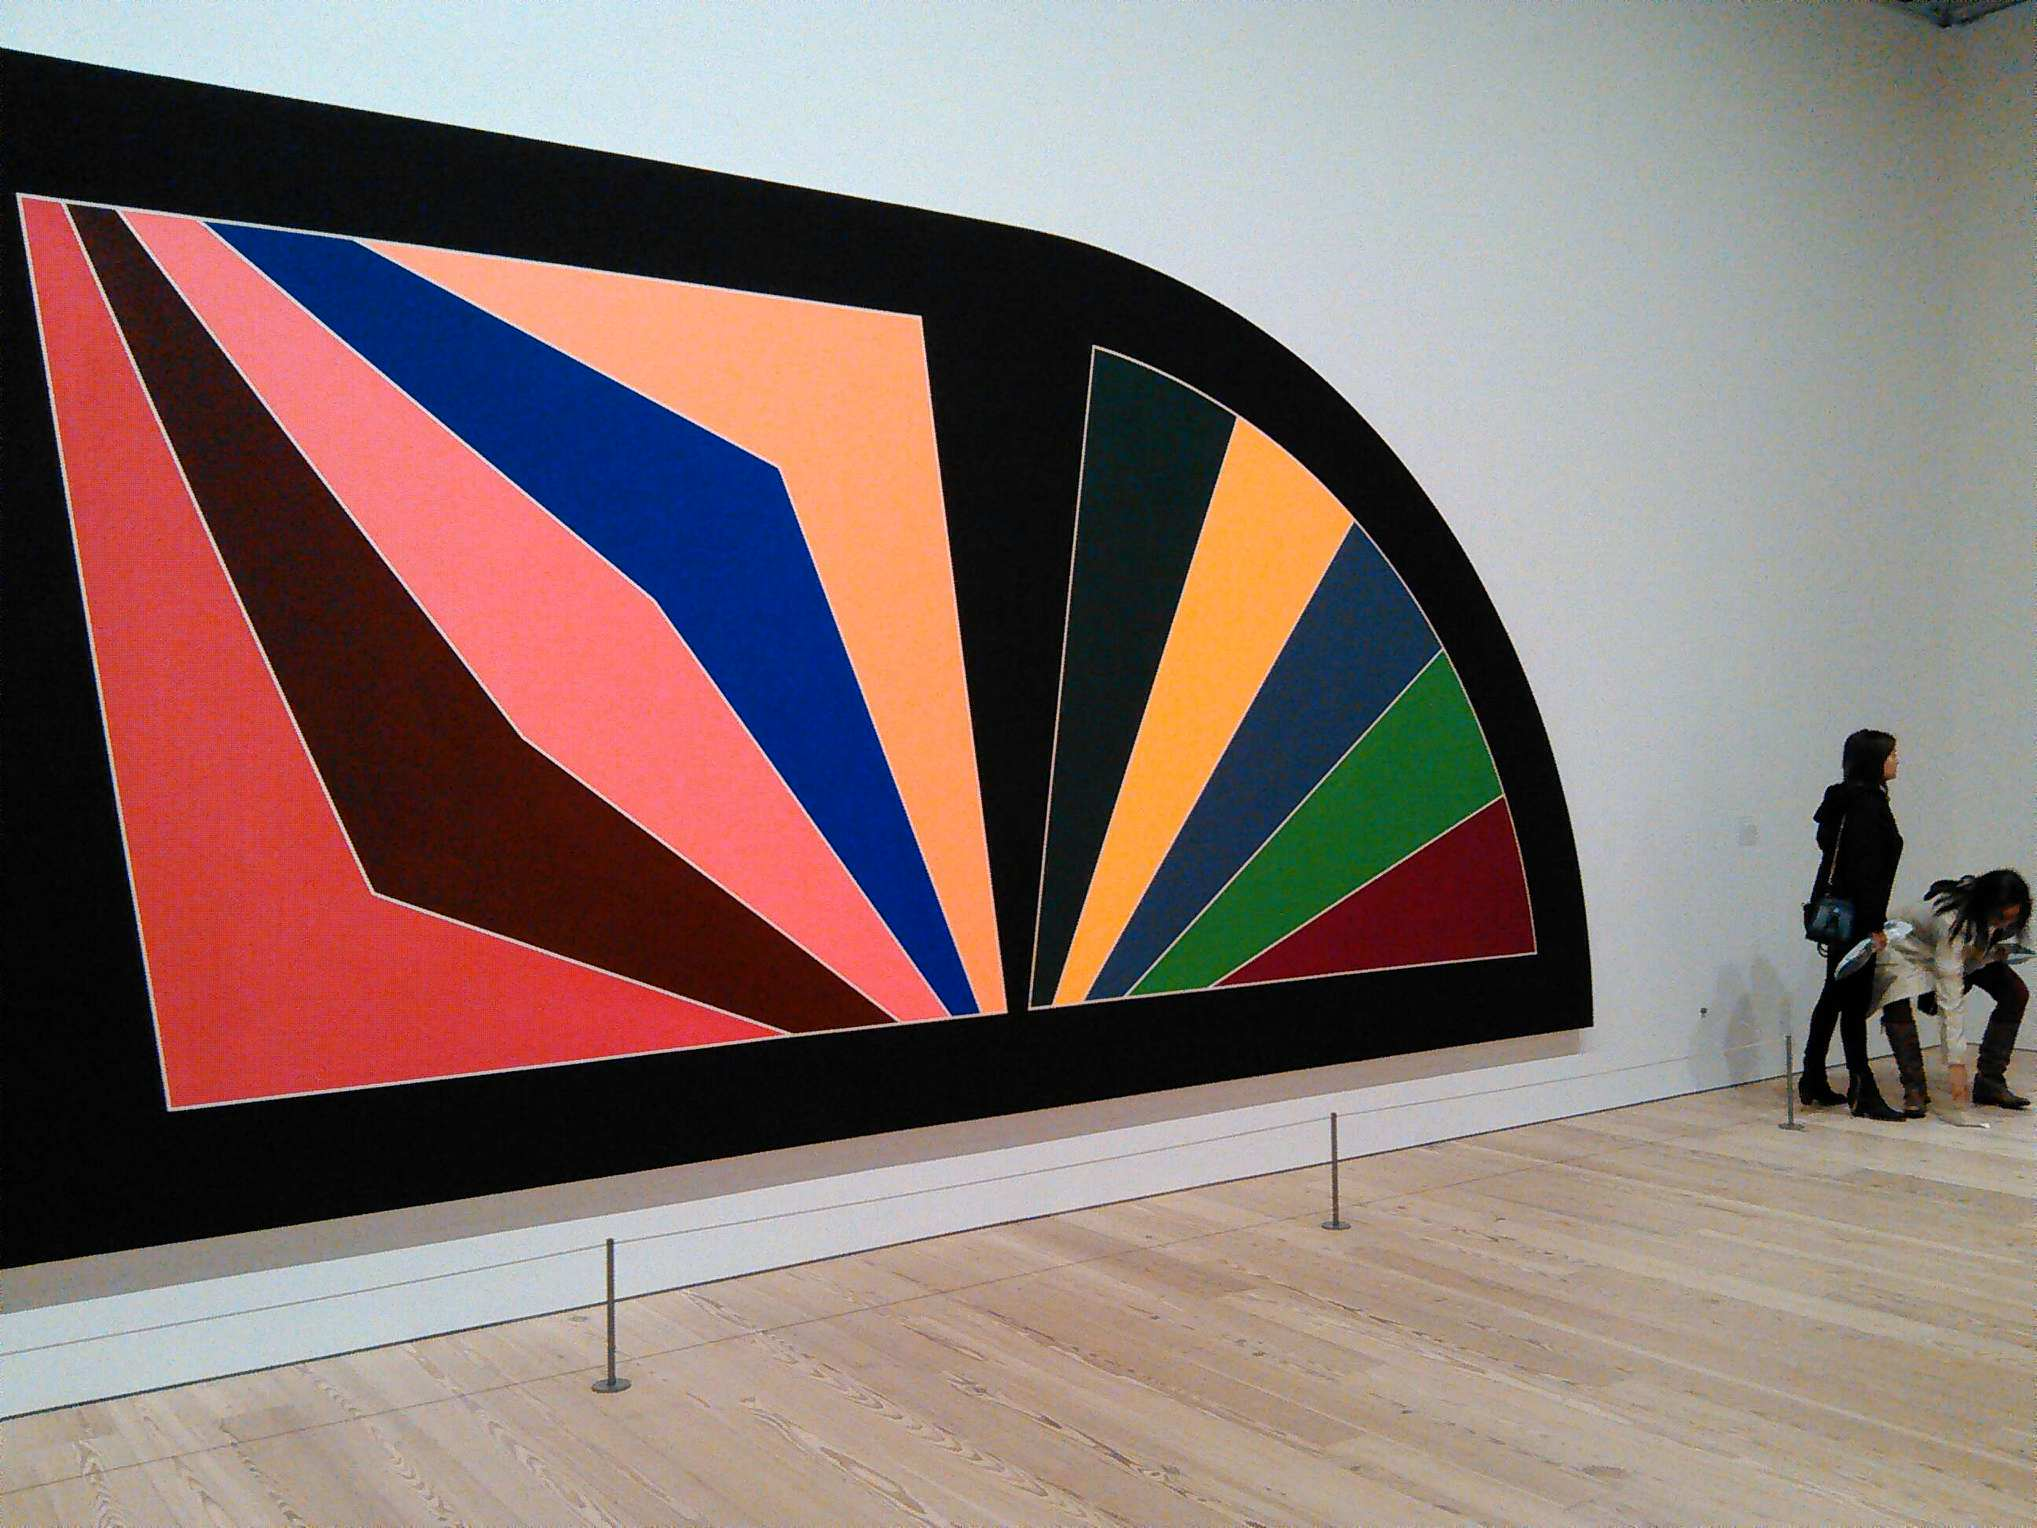 One of the more familiar Stella works on display at the Whitney.